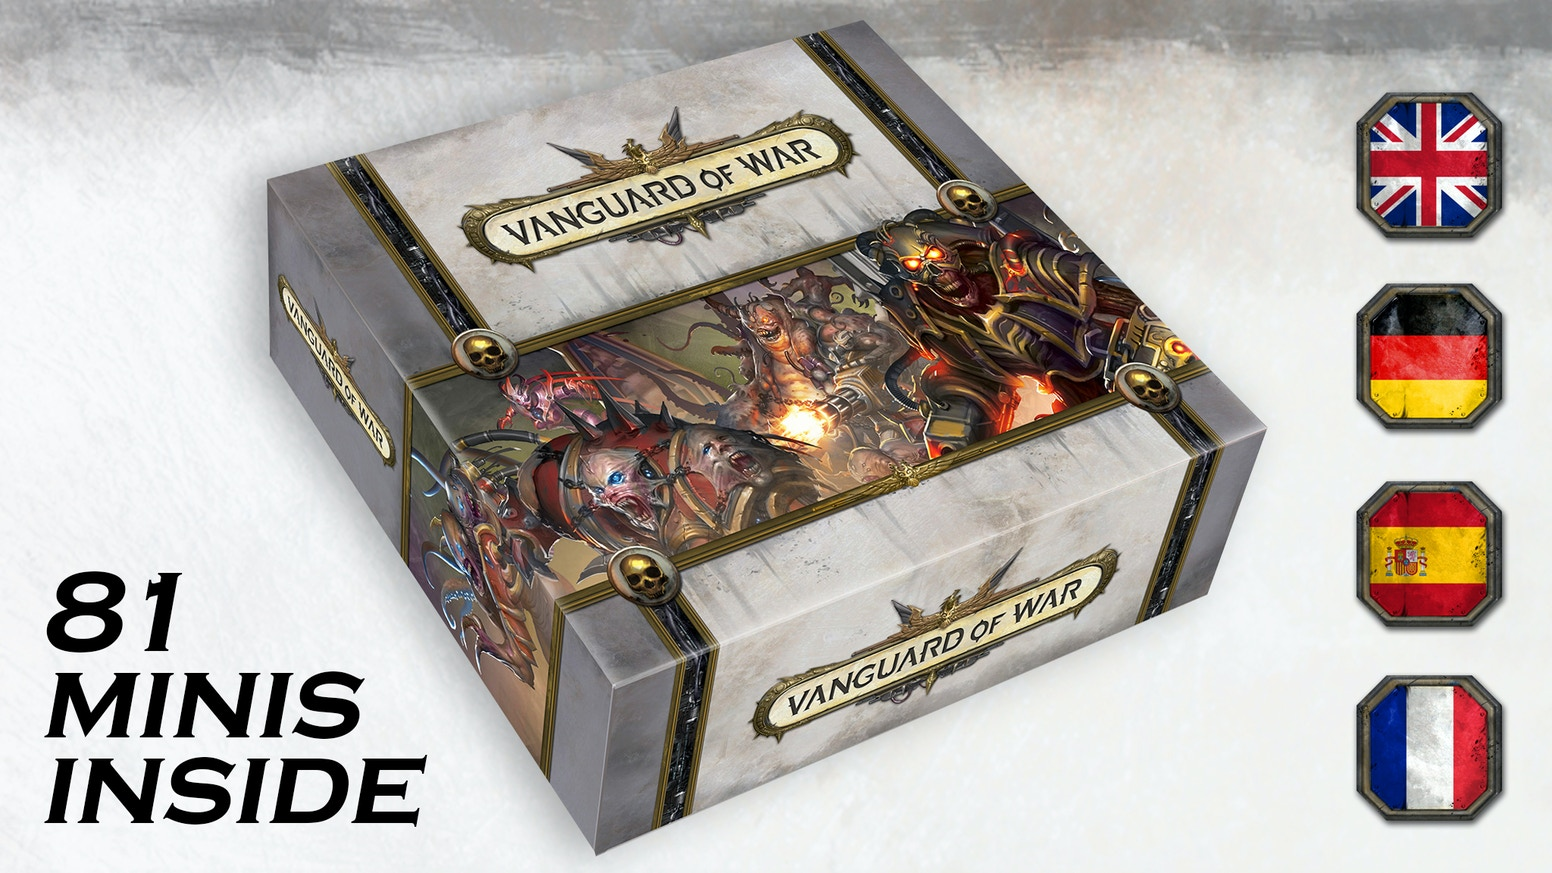 Vanguard of War is a 1-4 player survival co-op miniature board game focused on protection of the objective.